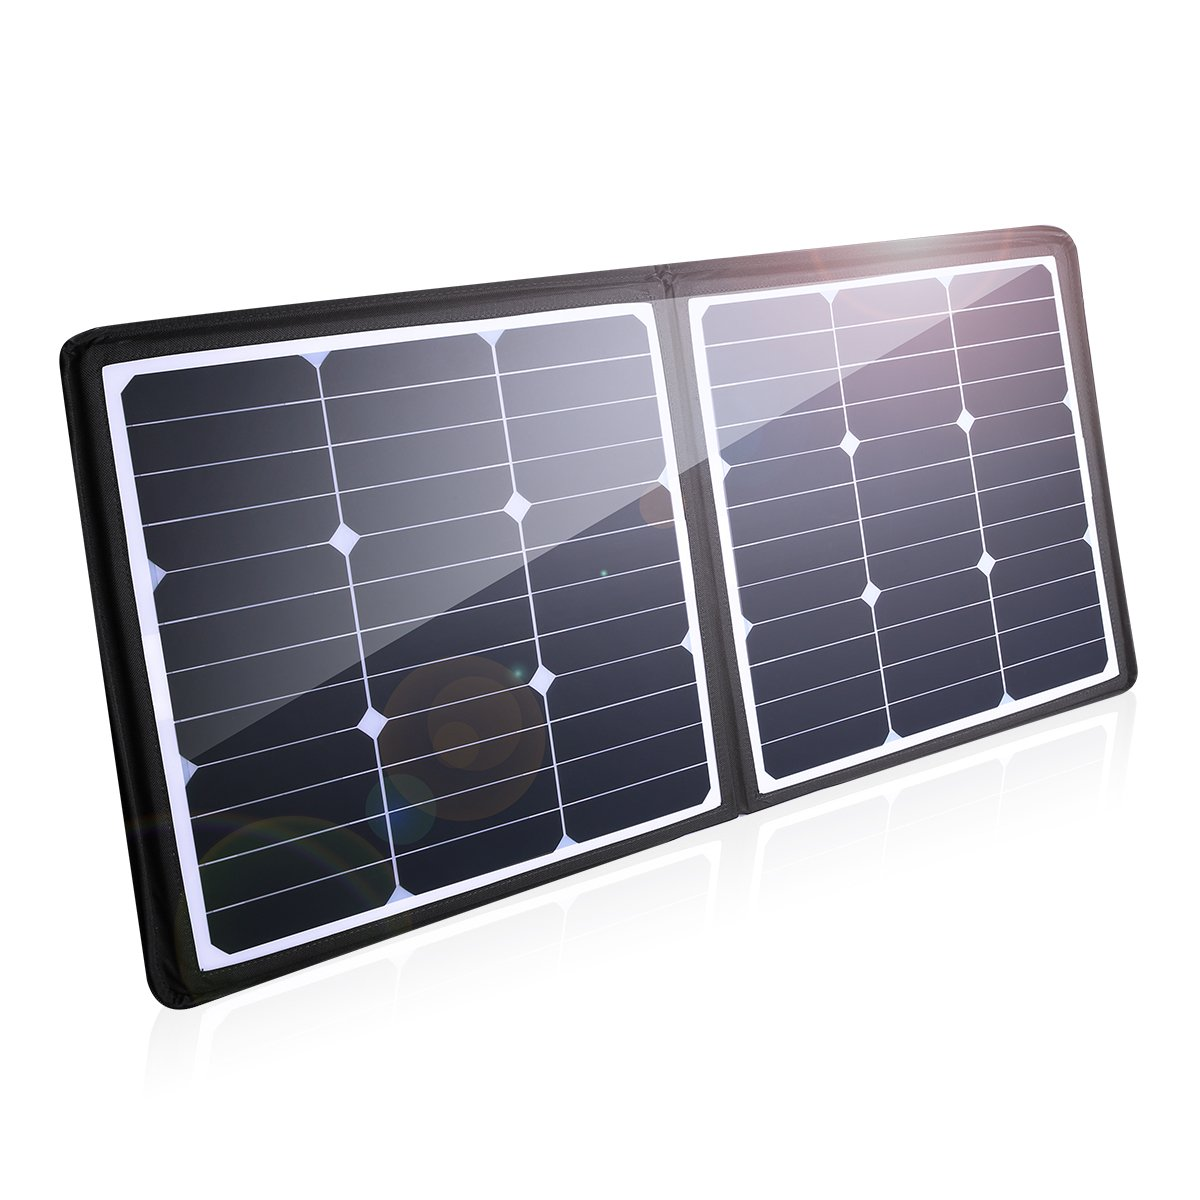 POWERADD [High Efficiency] 50W Solar Charger, 18V 12V SUNPOWER Solar Panel for Laptop, iPhone X / 8/8 Plus, iPad Pro, iPad mini, Macbook, iPad Samsung, ChargerCenter, Island Region and Country Tours